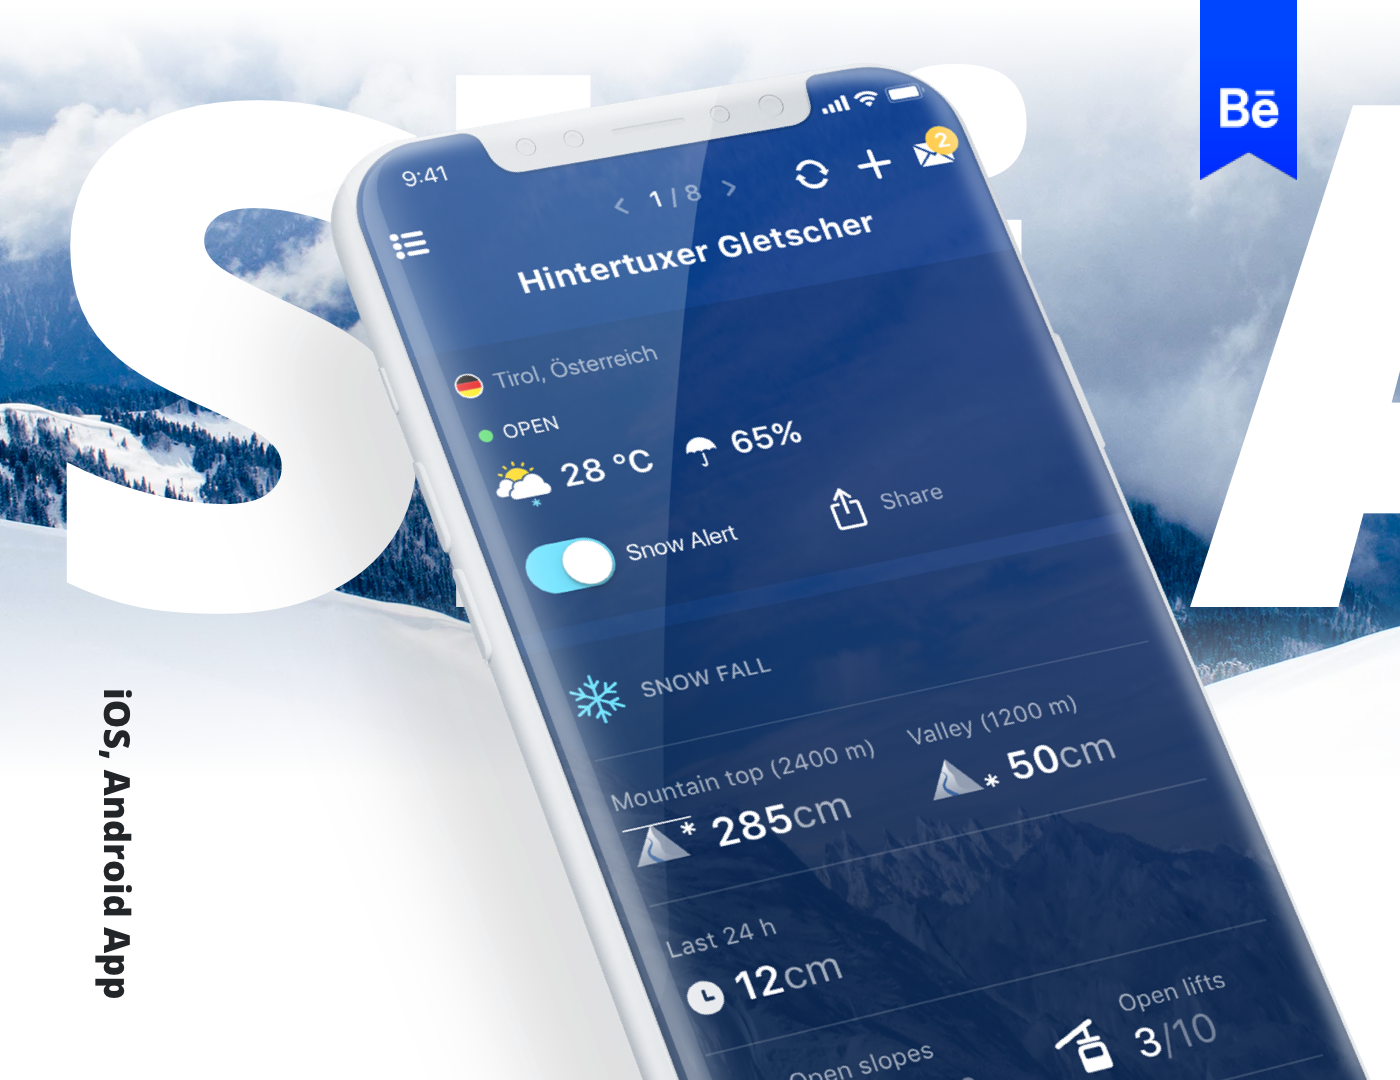 """Check out this Behance project """"Schneehoehen Ski App"""